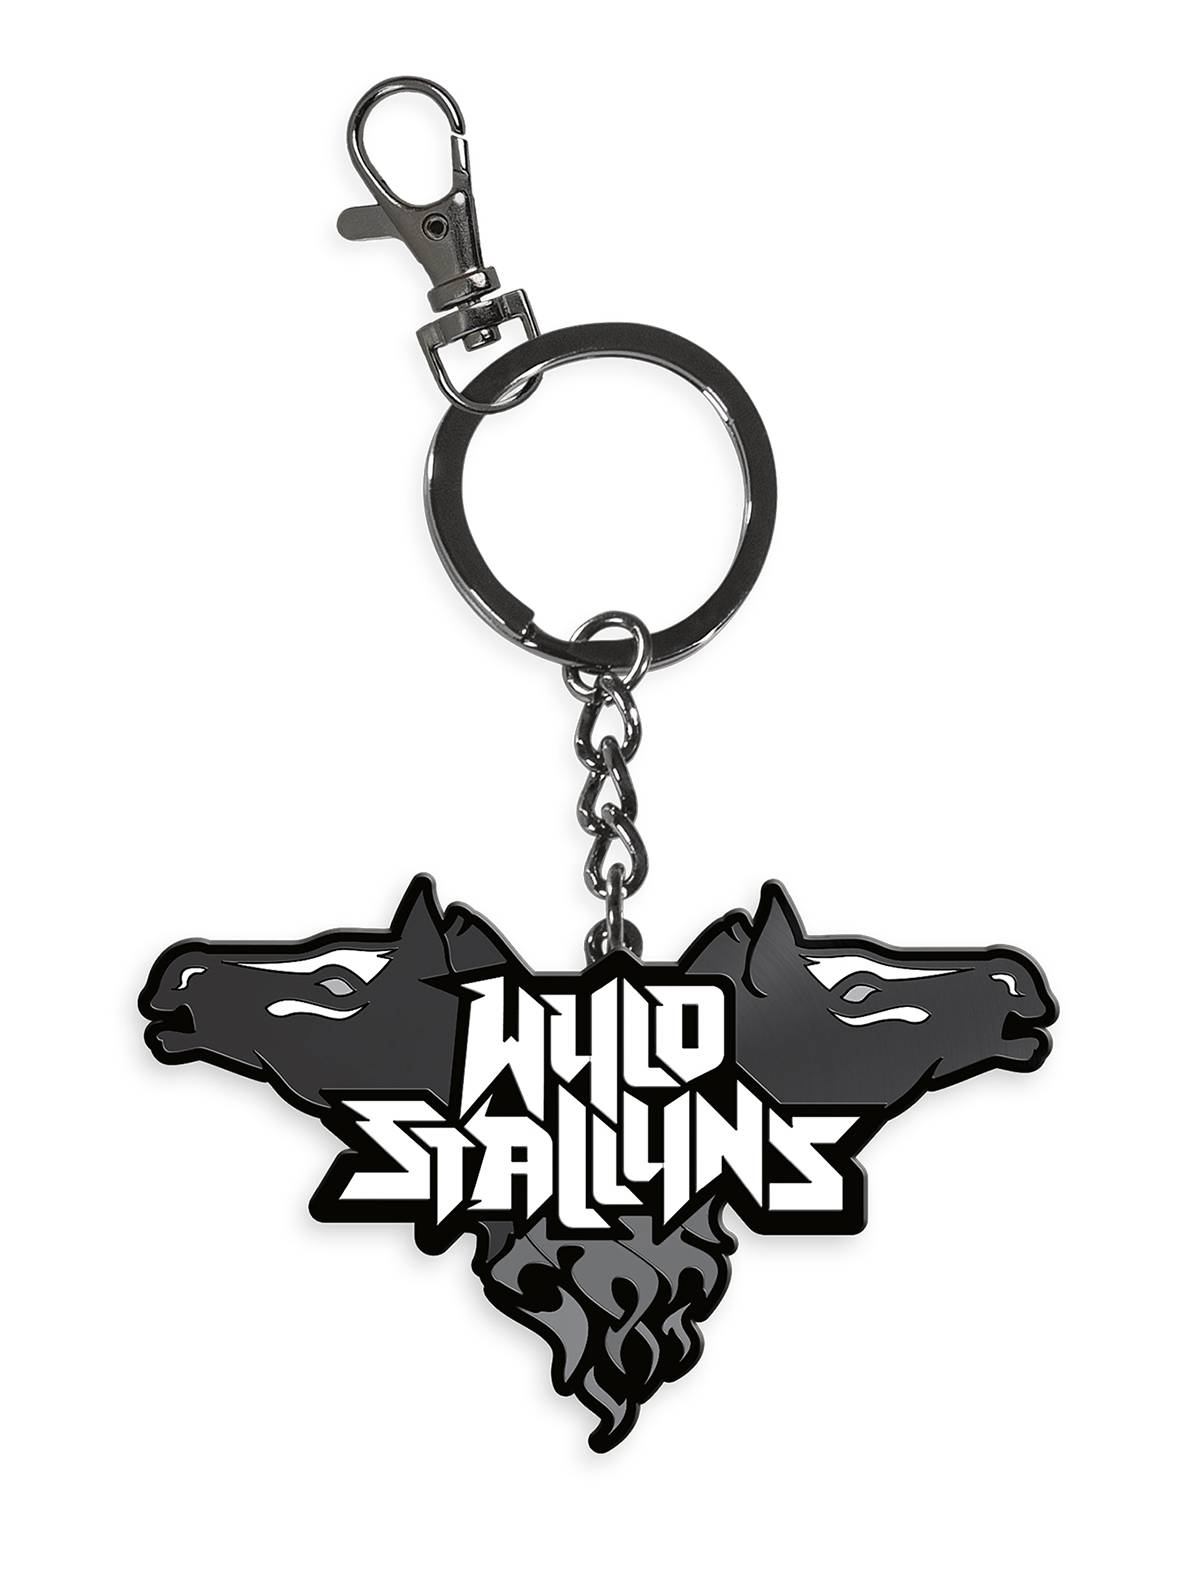 BILL & TED FACE MUSIC WYLD STALLYNS KEYCHAIN